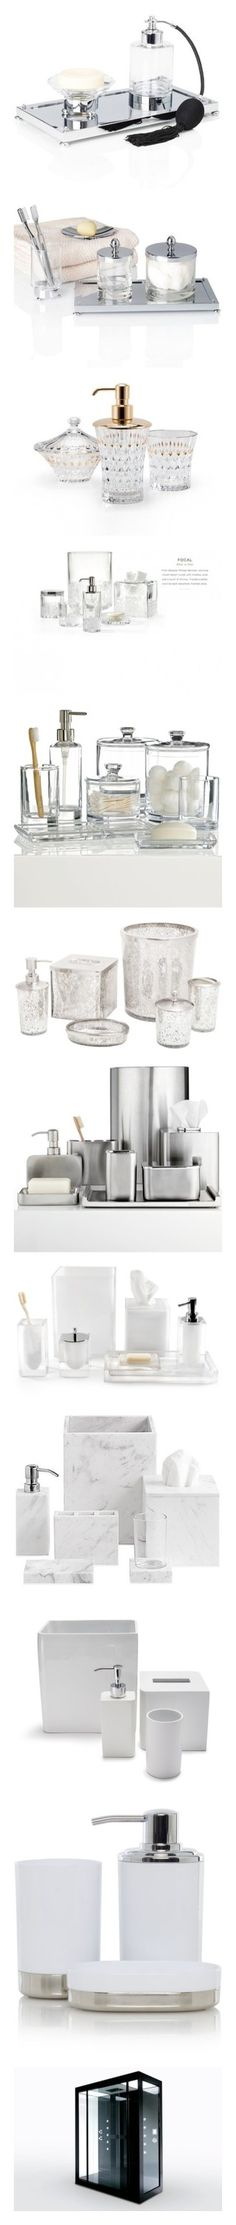 """Bathroom: sink, bath, tub, shower, toilet, accessories,"" by riell-projecthome ❤ liked on Polyvore featuring home, bed & bath, bath, bath accessories, marble bathroom accessories, marble bath accessories, home improvement, storage & organization, anodized brushed bronze and shower doors"